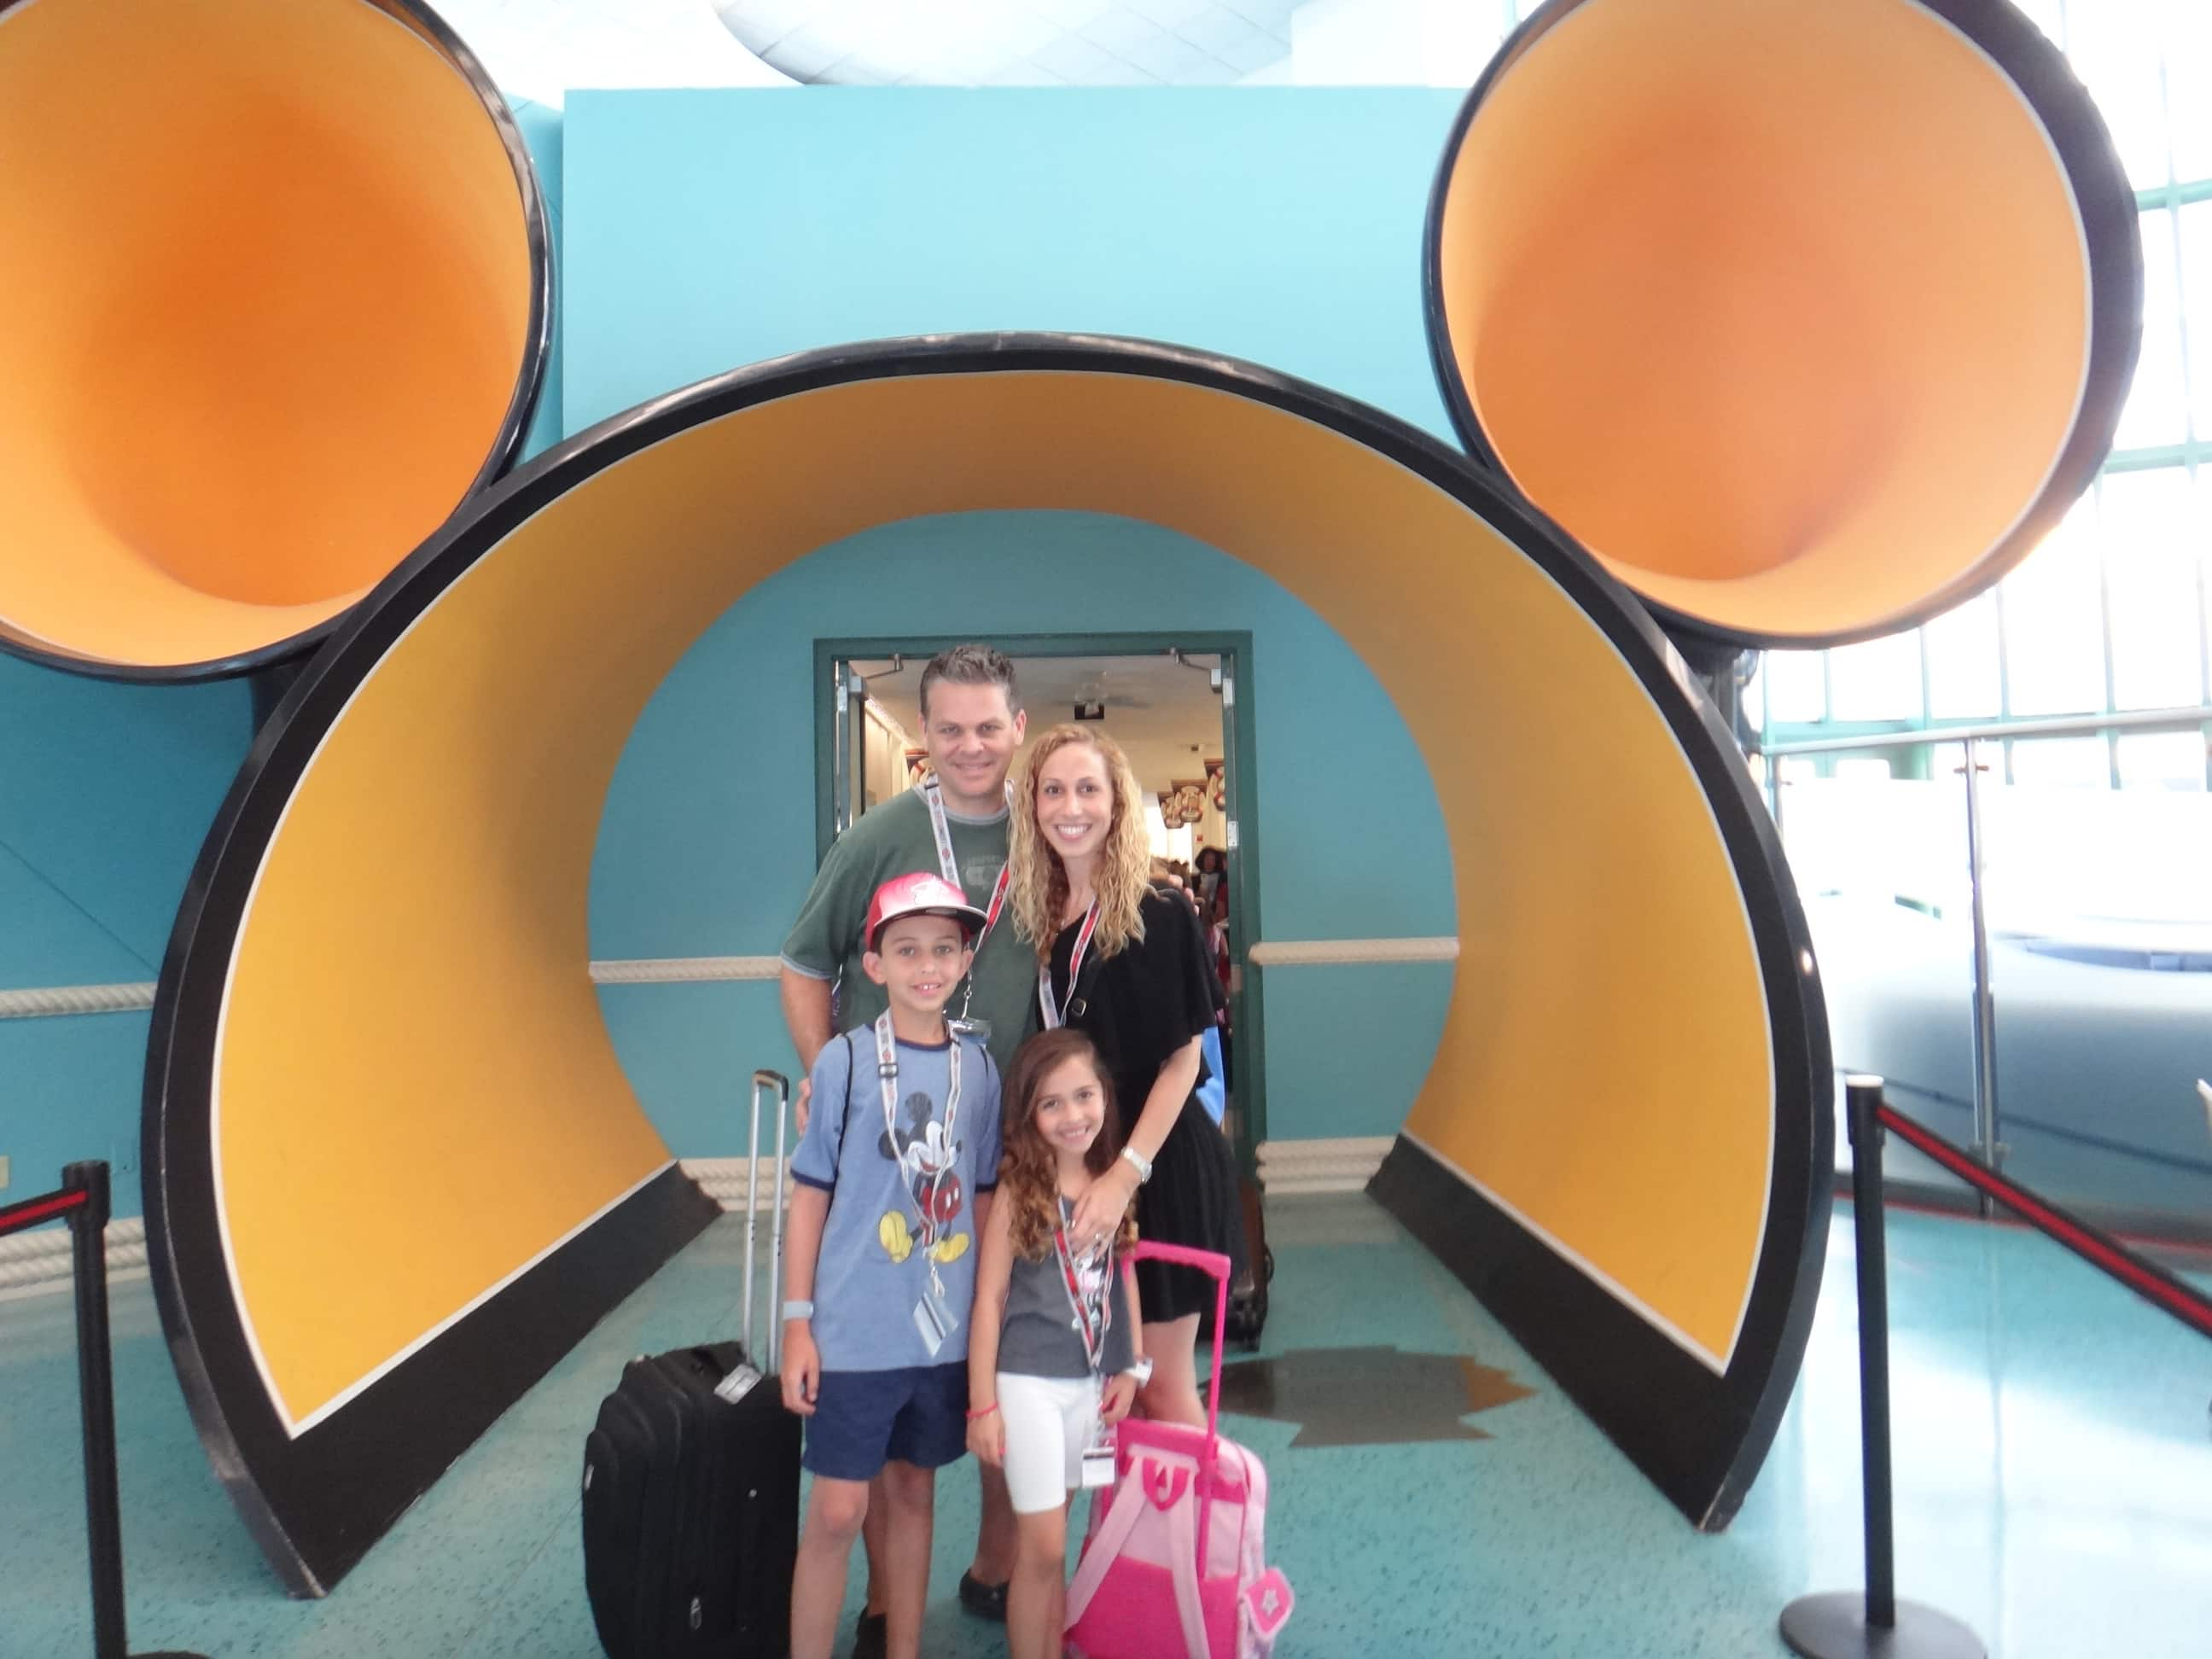 All ready to embark on the Disney Fantasy Cruise